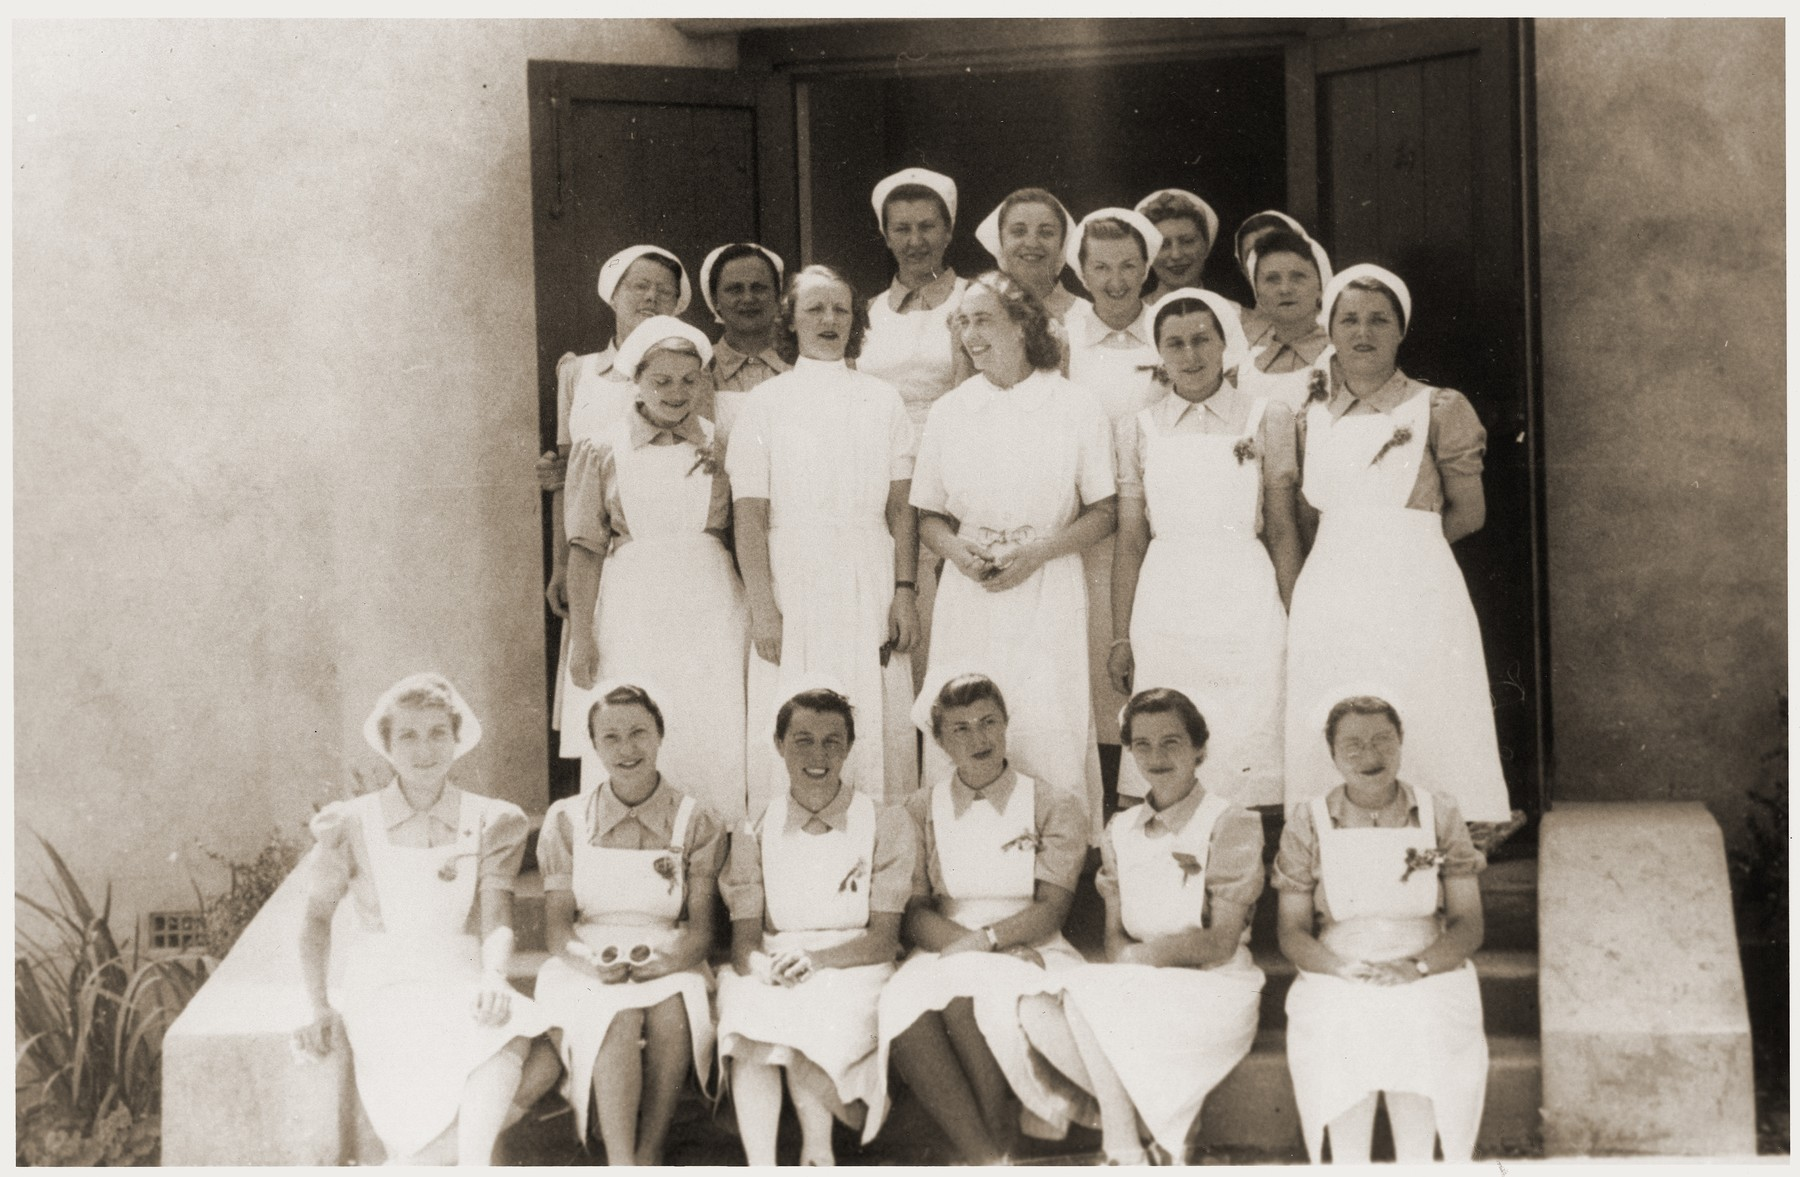 Nurses at the Recebedou camp infirmary.   Standing first from the left is Isabelle Peloux (aunt of Marie Genevieve Parmentier), Mademoiselle Baguelin, and Dr. Mirc. Behind Isabelle is Odette Clauzolles. Seated, second from the right, is Mademoiselle Rondespierre.  Marie Genevieve Parmentier was a ten year-old French girl living in Paris at the time of the German occupation in 1940. Her widowed mother sent her to safety with an old relative in Ariège in the South of France. She sooned joined her aunt, Isabelle Peloux, a military nurse, at the camp of Recebedou. While there she attended primary school at nearby Portet-sur-Garonne, before returning to her family in the summer of 1941.